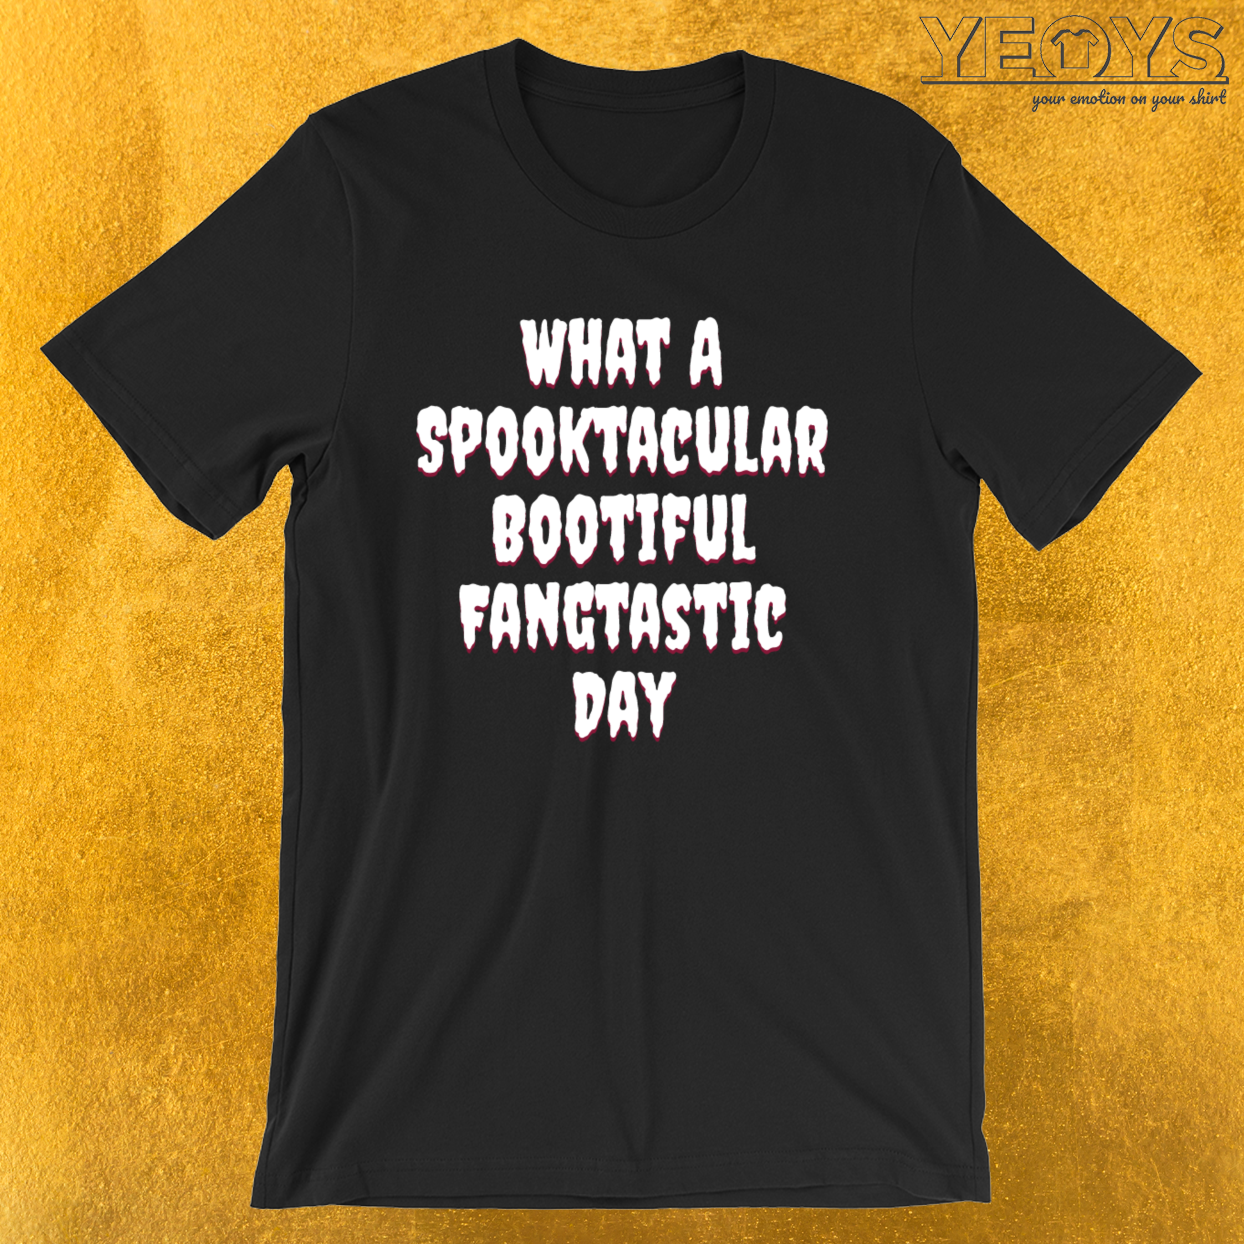 What A Spooktacular Bootiful Fangtastic Day – Spooktacular Halloween Tee